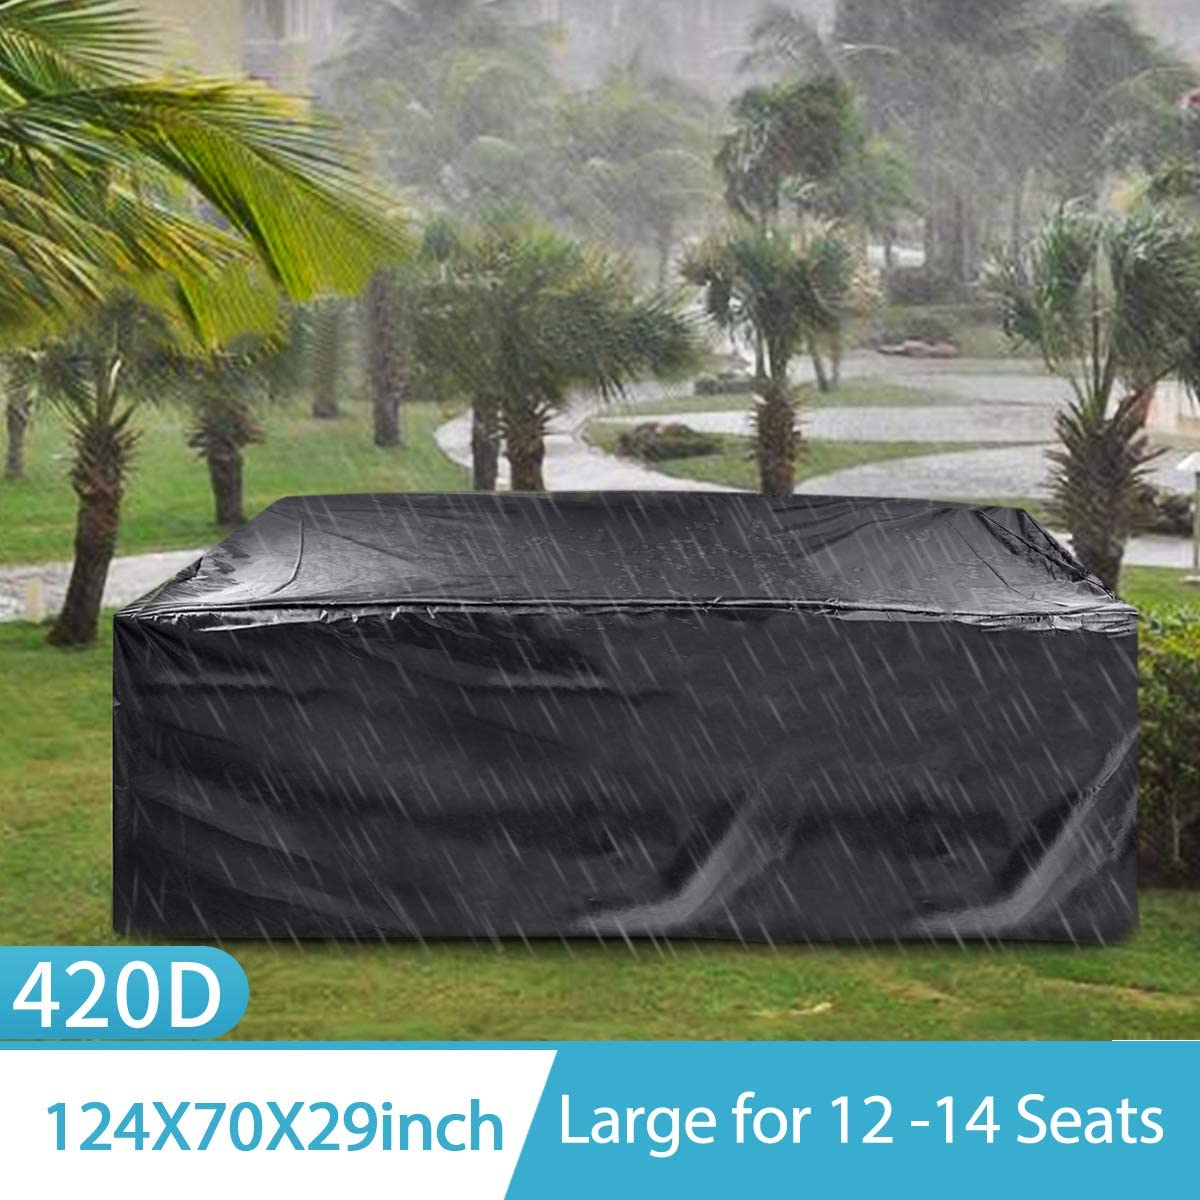 king do way Outdoor Patio Furniture Covers , 315x180x74cm Waterproof 420D Oxford Polyester Extra Large Size Furniture Set Covers Fits to 12-14Seat